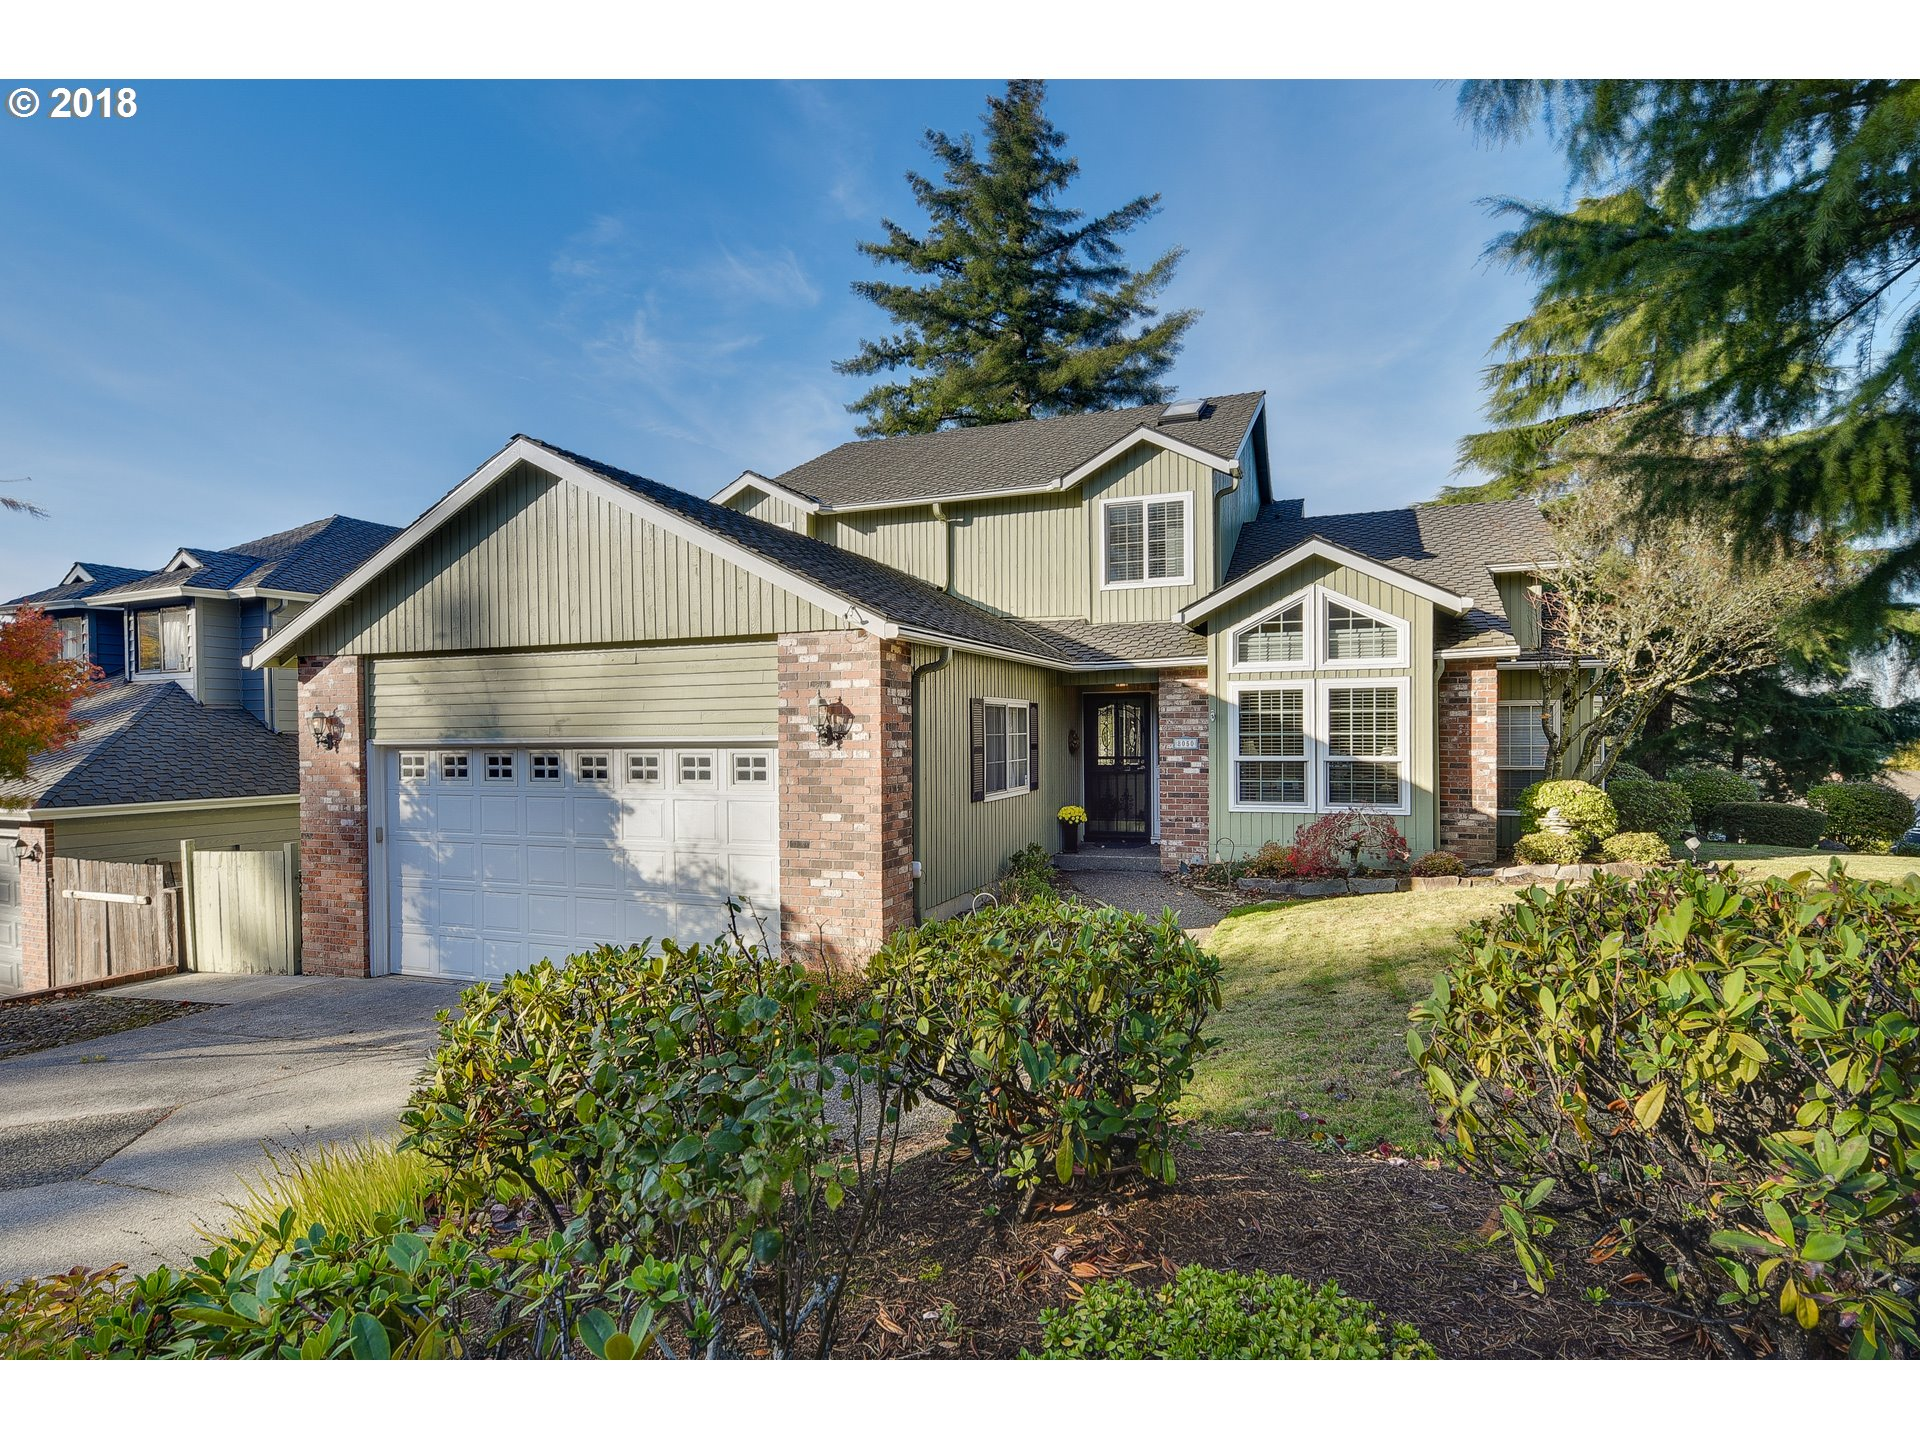 8050 SE 140TH DR Portland, OR 97236 - MLS #: 18232634